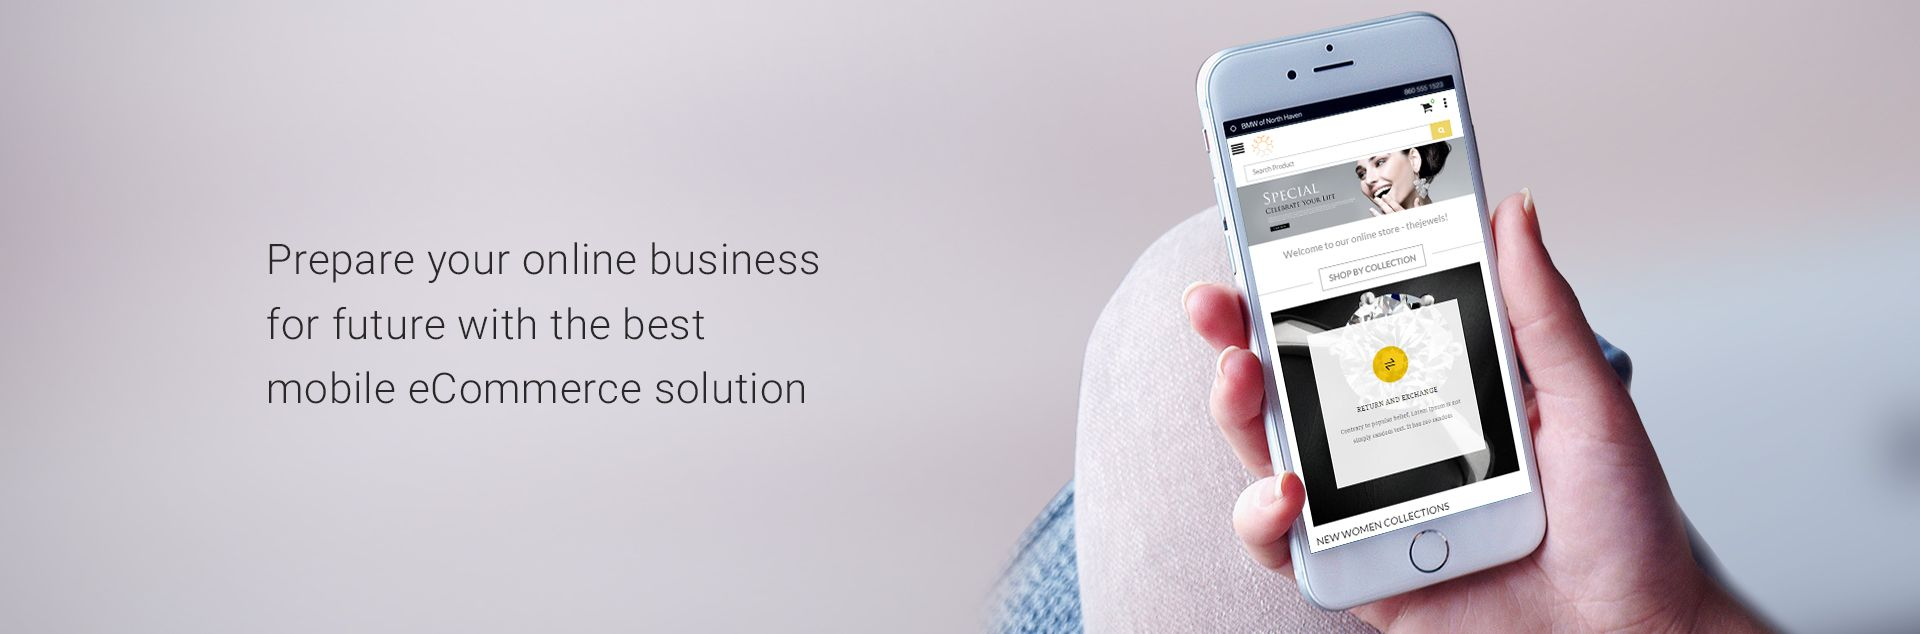 Best Mobile Ecommerce Solution